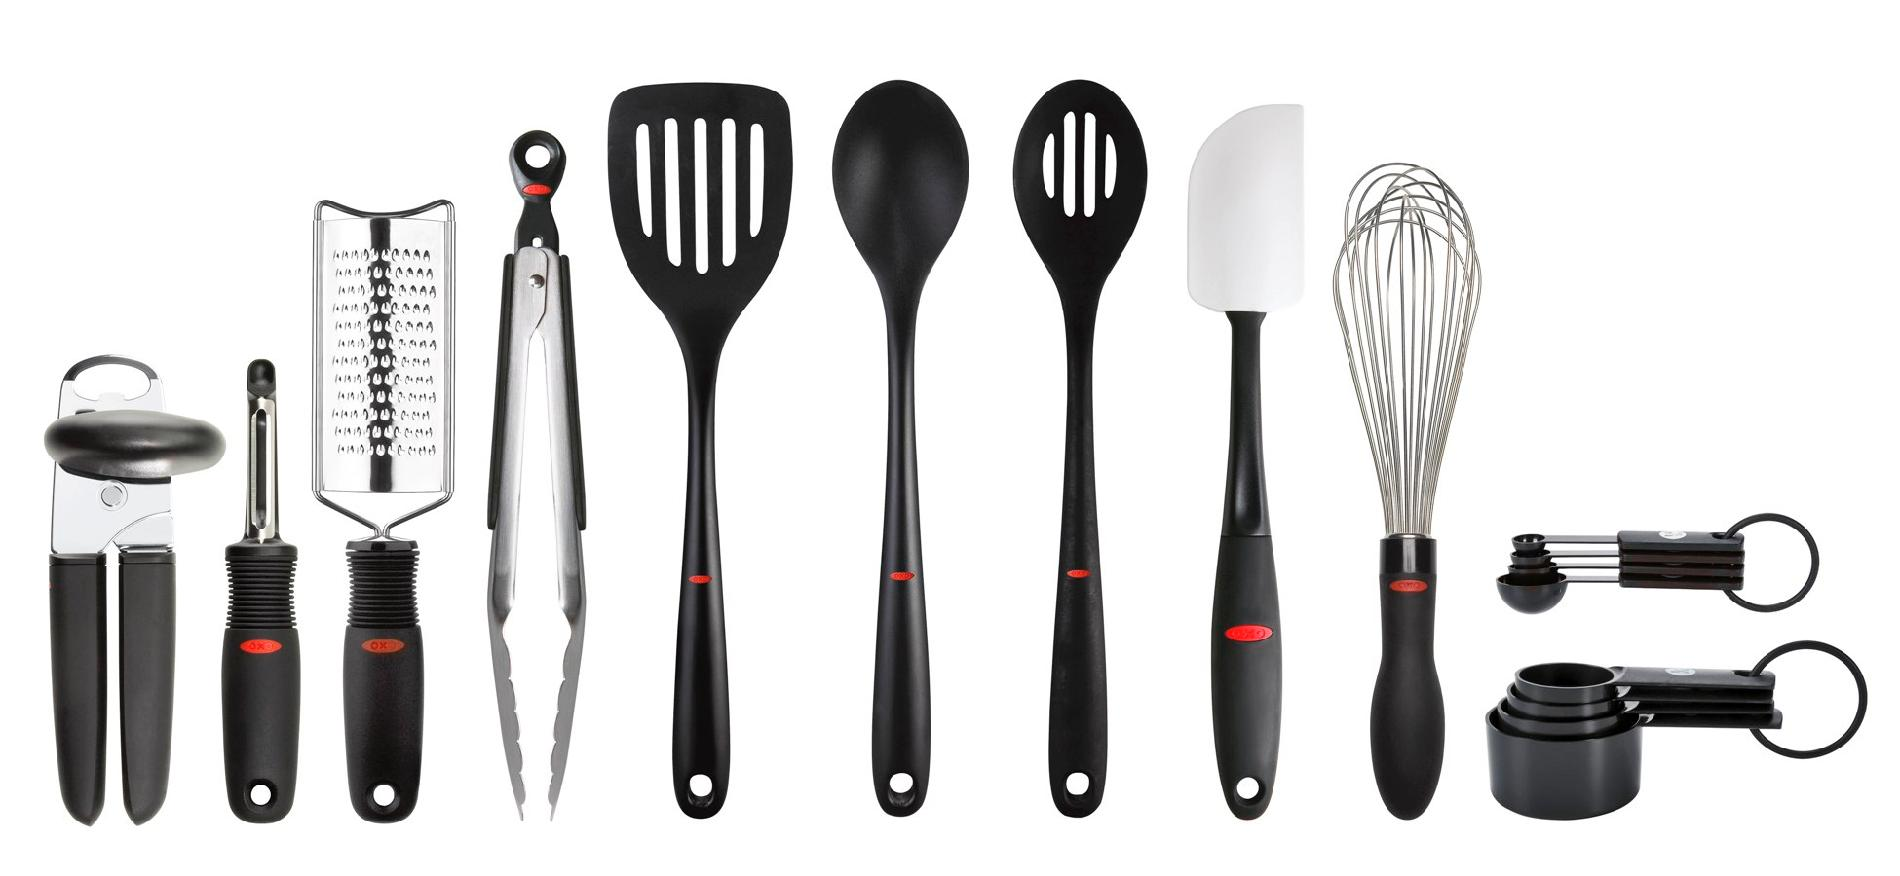 Kitchen Set Name Oxo 17 Pc Everyday Kitchen Tool Set